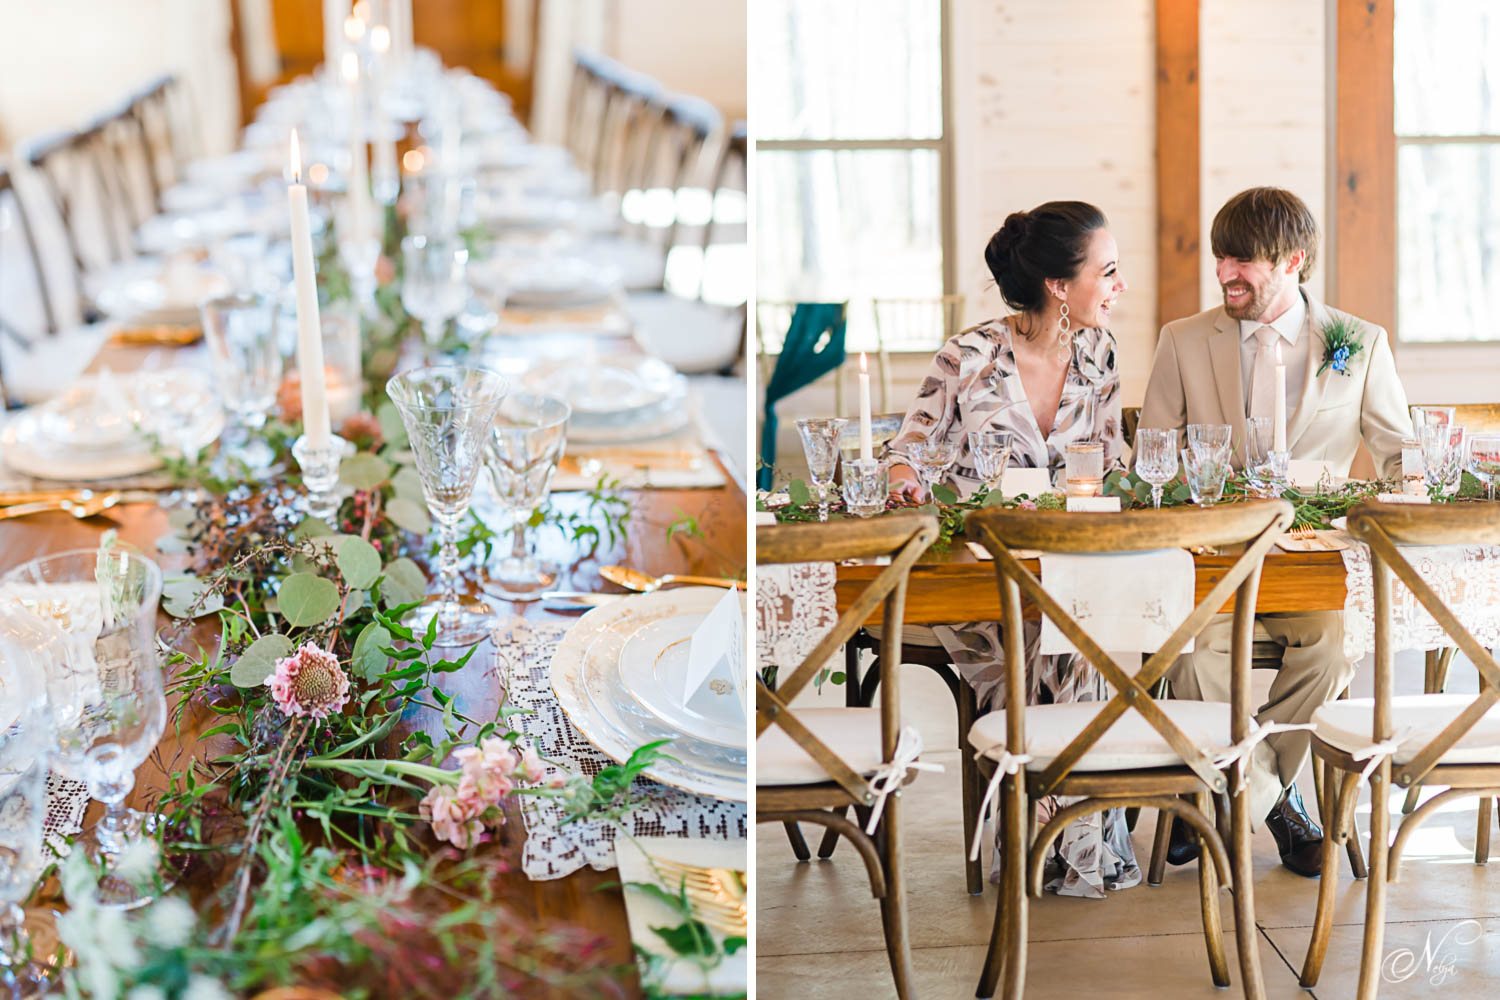 vintage glassware on long woodentable at styled reception atHiwassee River Weddings